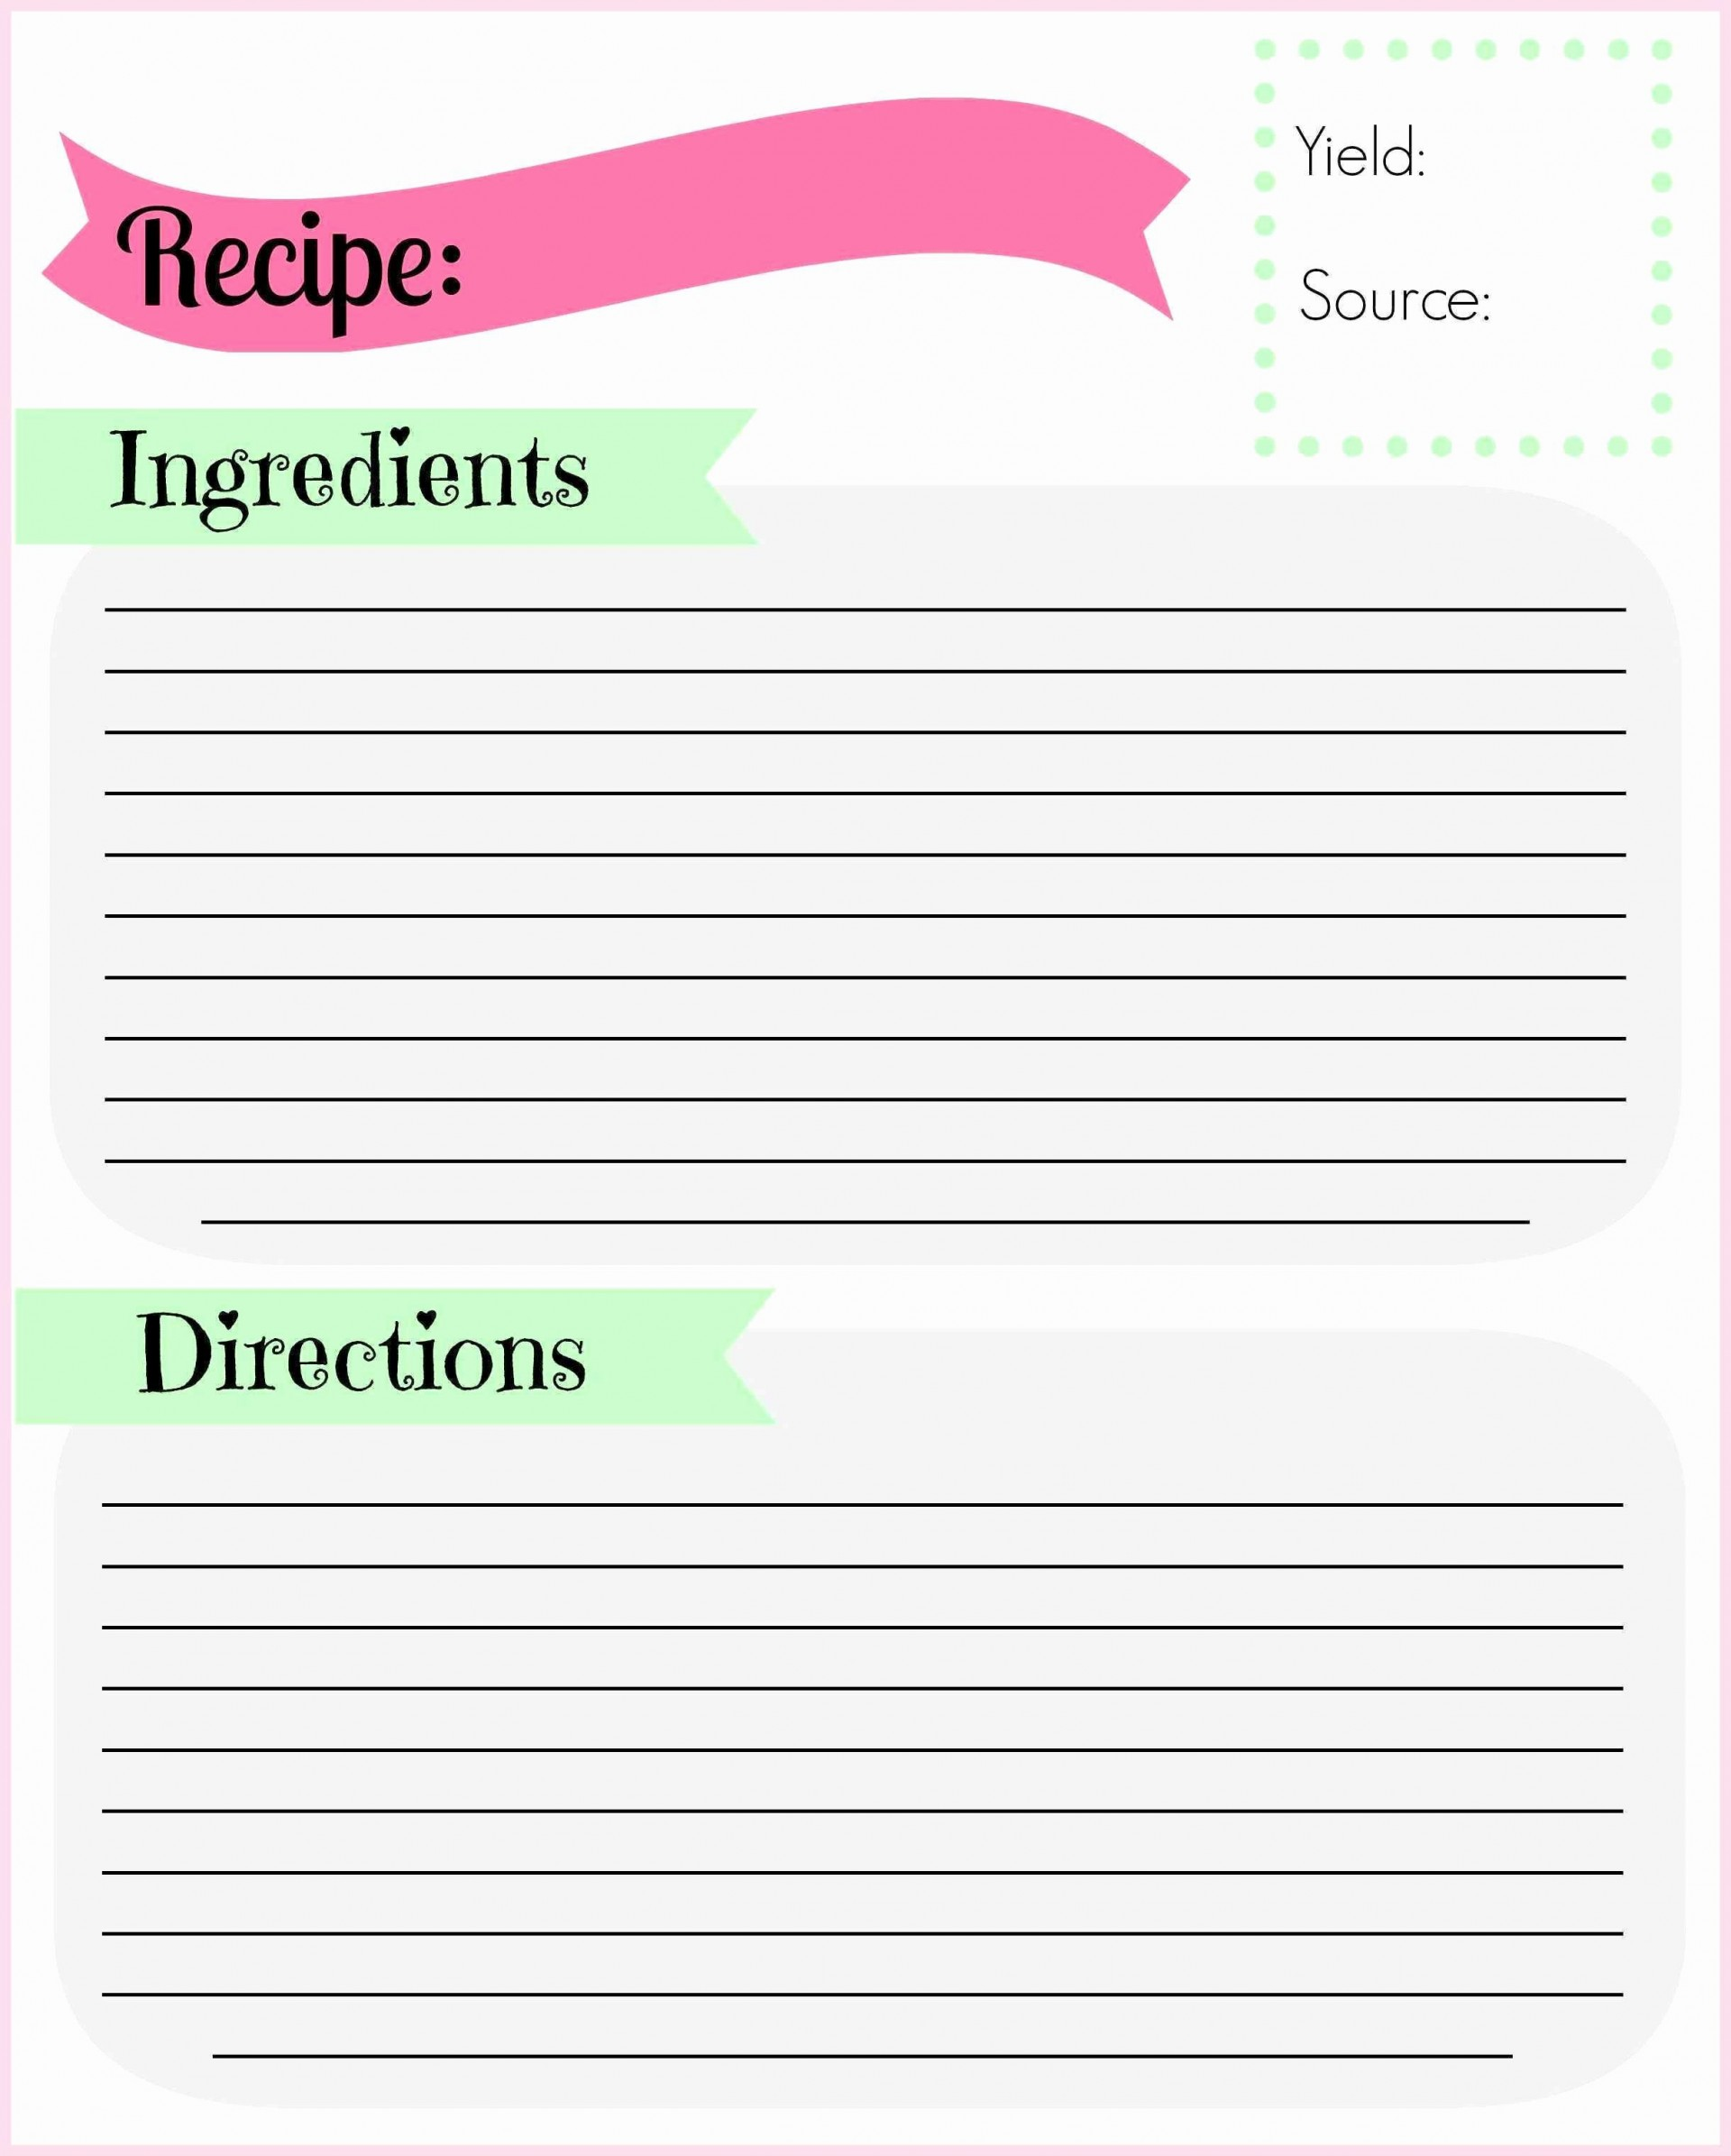 008 Simple M Word Recipe Template Design  Microsoft Card 2010 Full Page1920